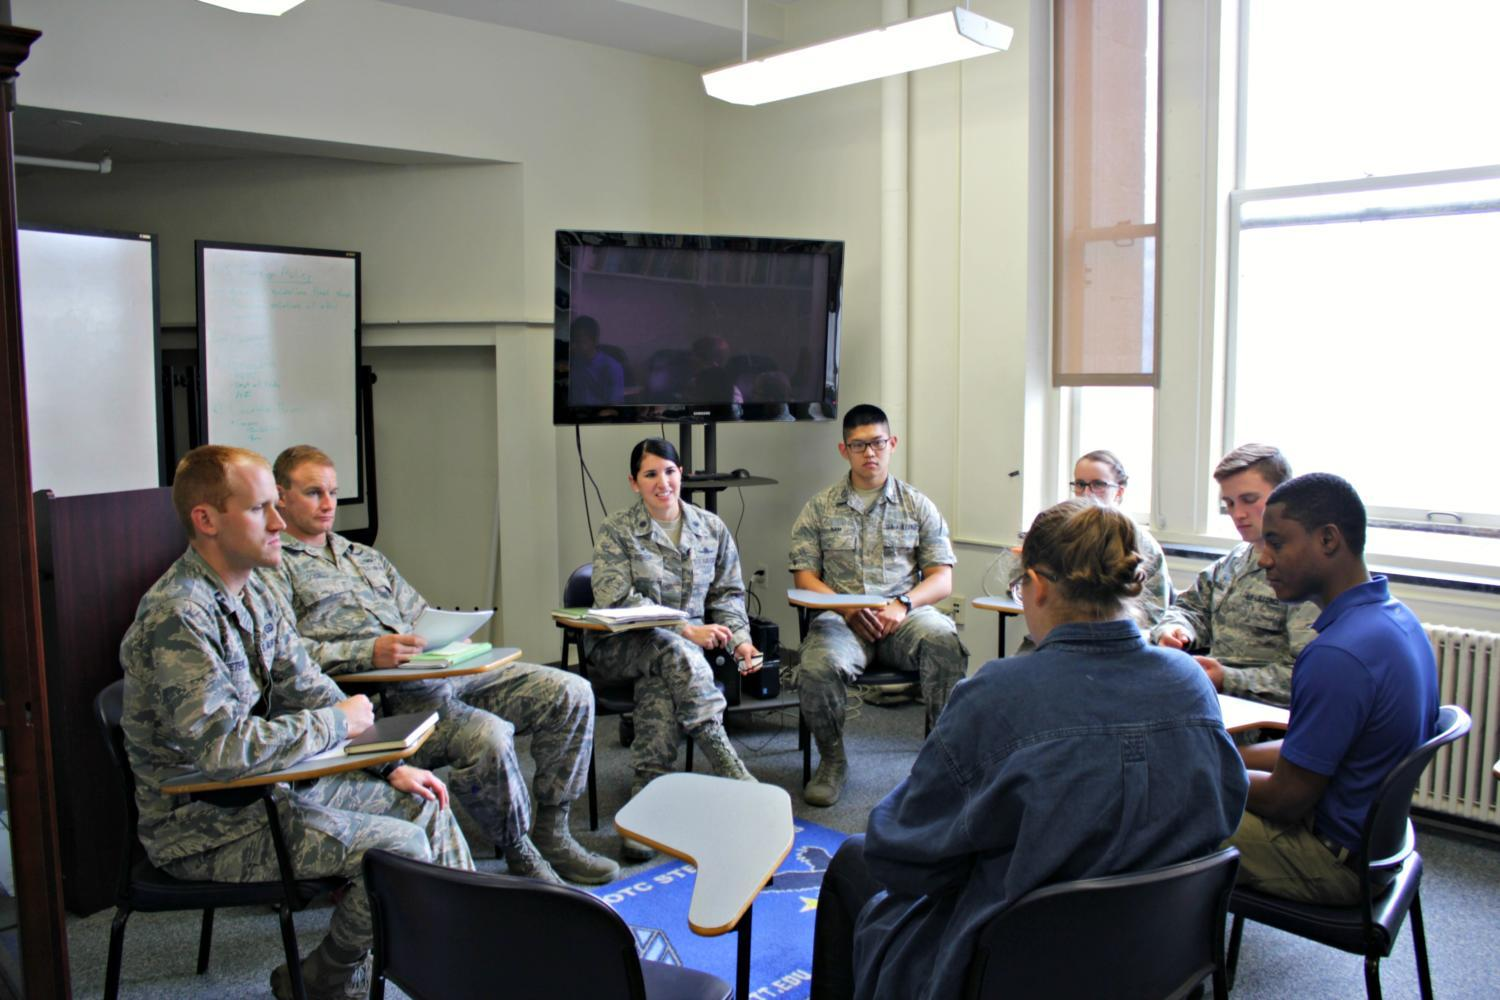 Pitt Air Force ROTC students talk with their commander,  Lt. Col. Diana Bishop, on the 29th floor of the Cathedral. (Courtesy of Jayson Baloy)